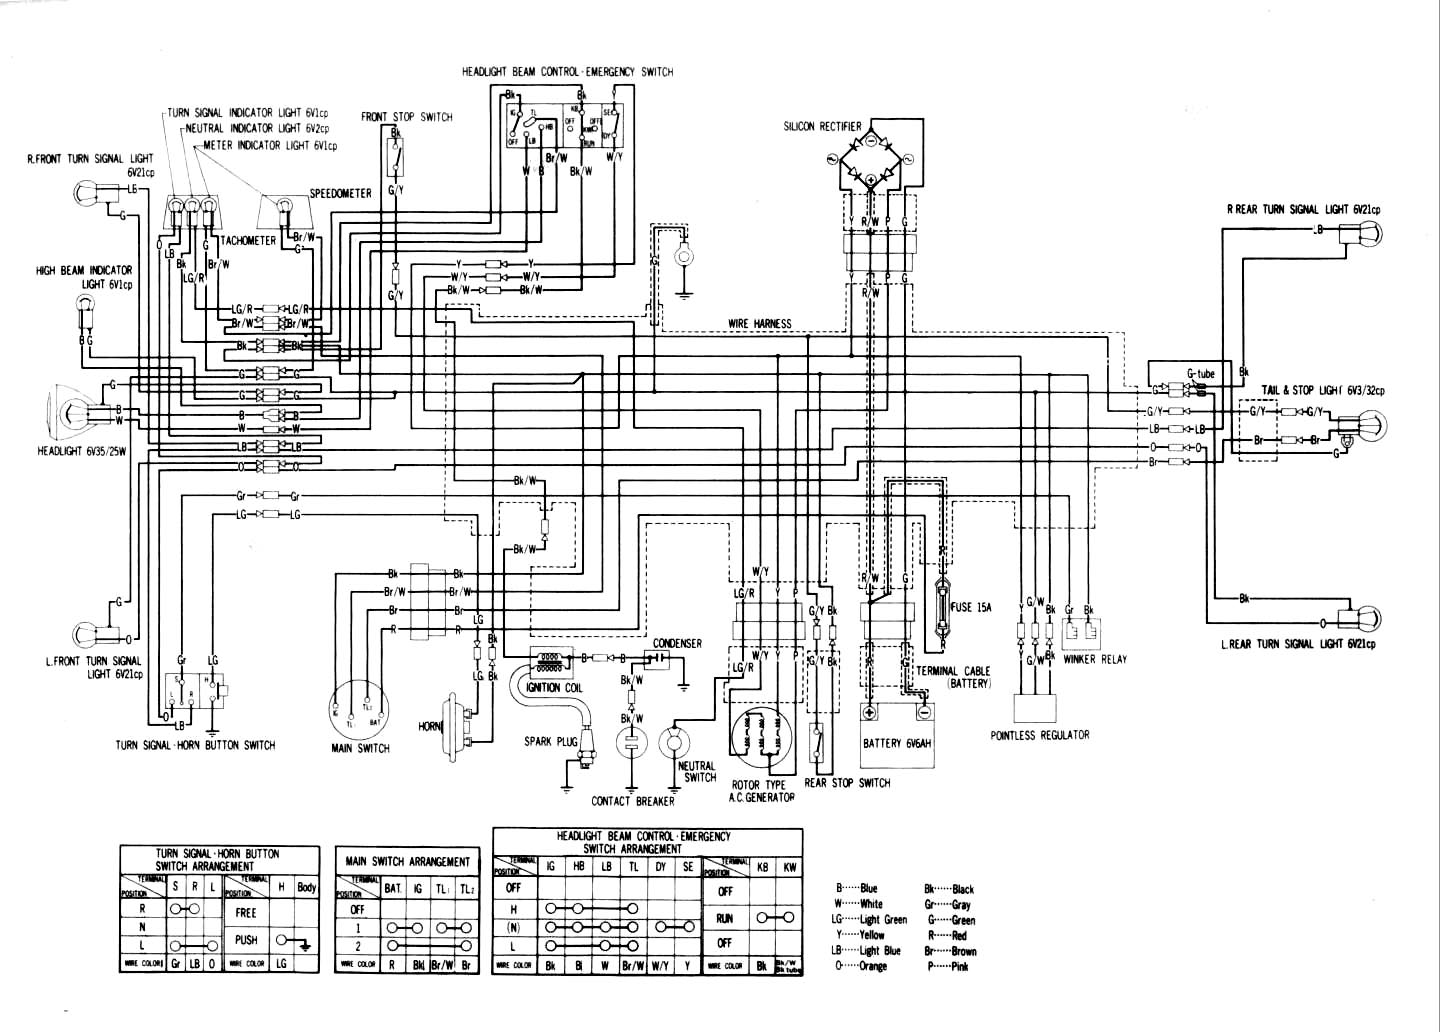 xl175 wiring diagrams 1983 honda shadow 750 wiring diagram at edmiracle.co